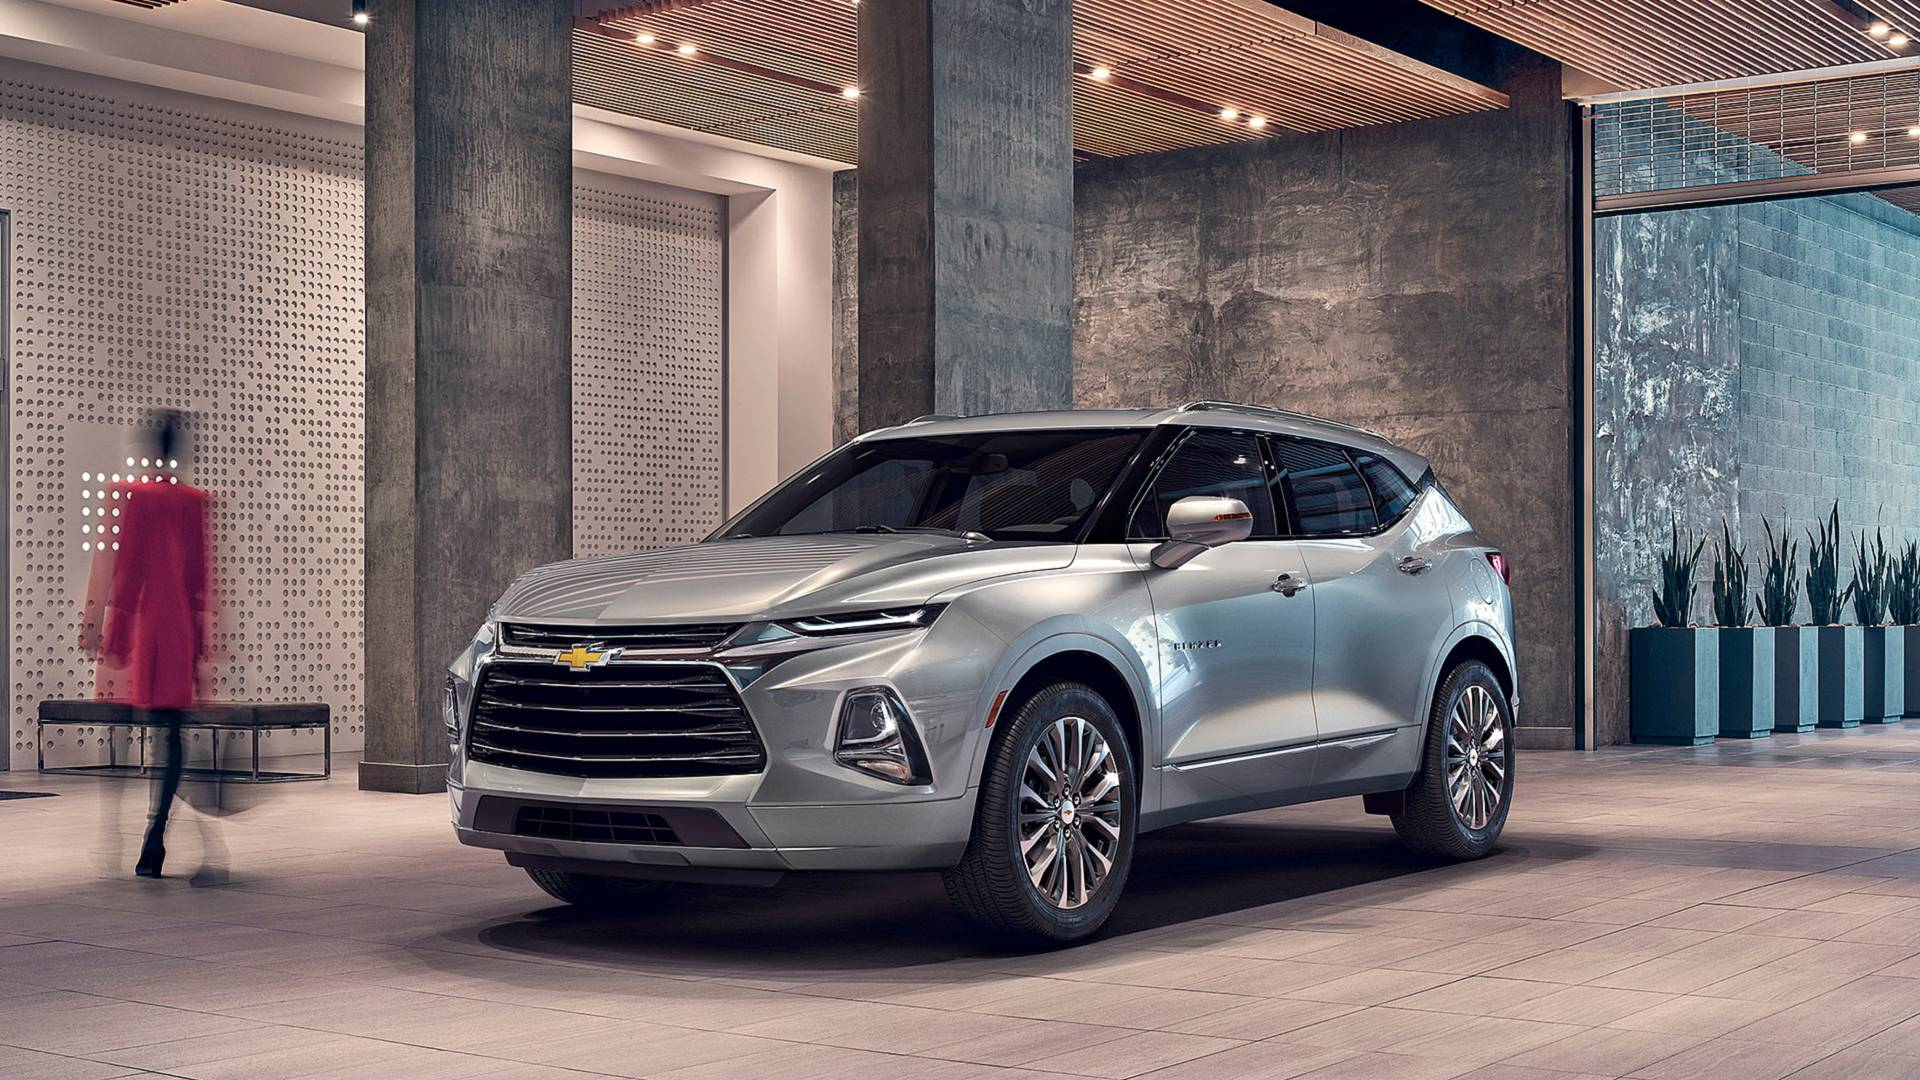 Ford Extended Warranty >> 2019 Chevrolet Blazer Pricing Tops At $48,960 - autoevolution